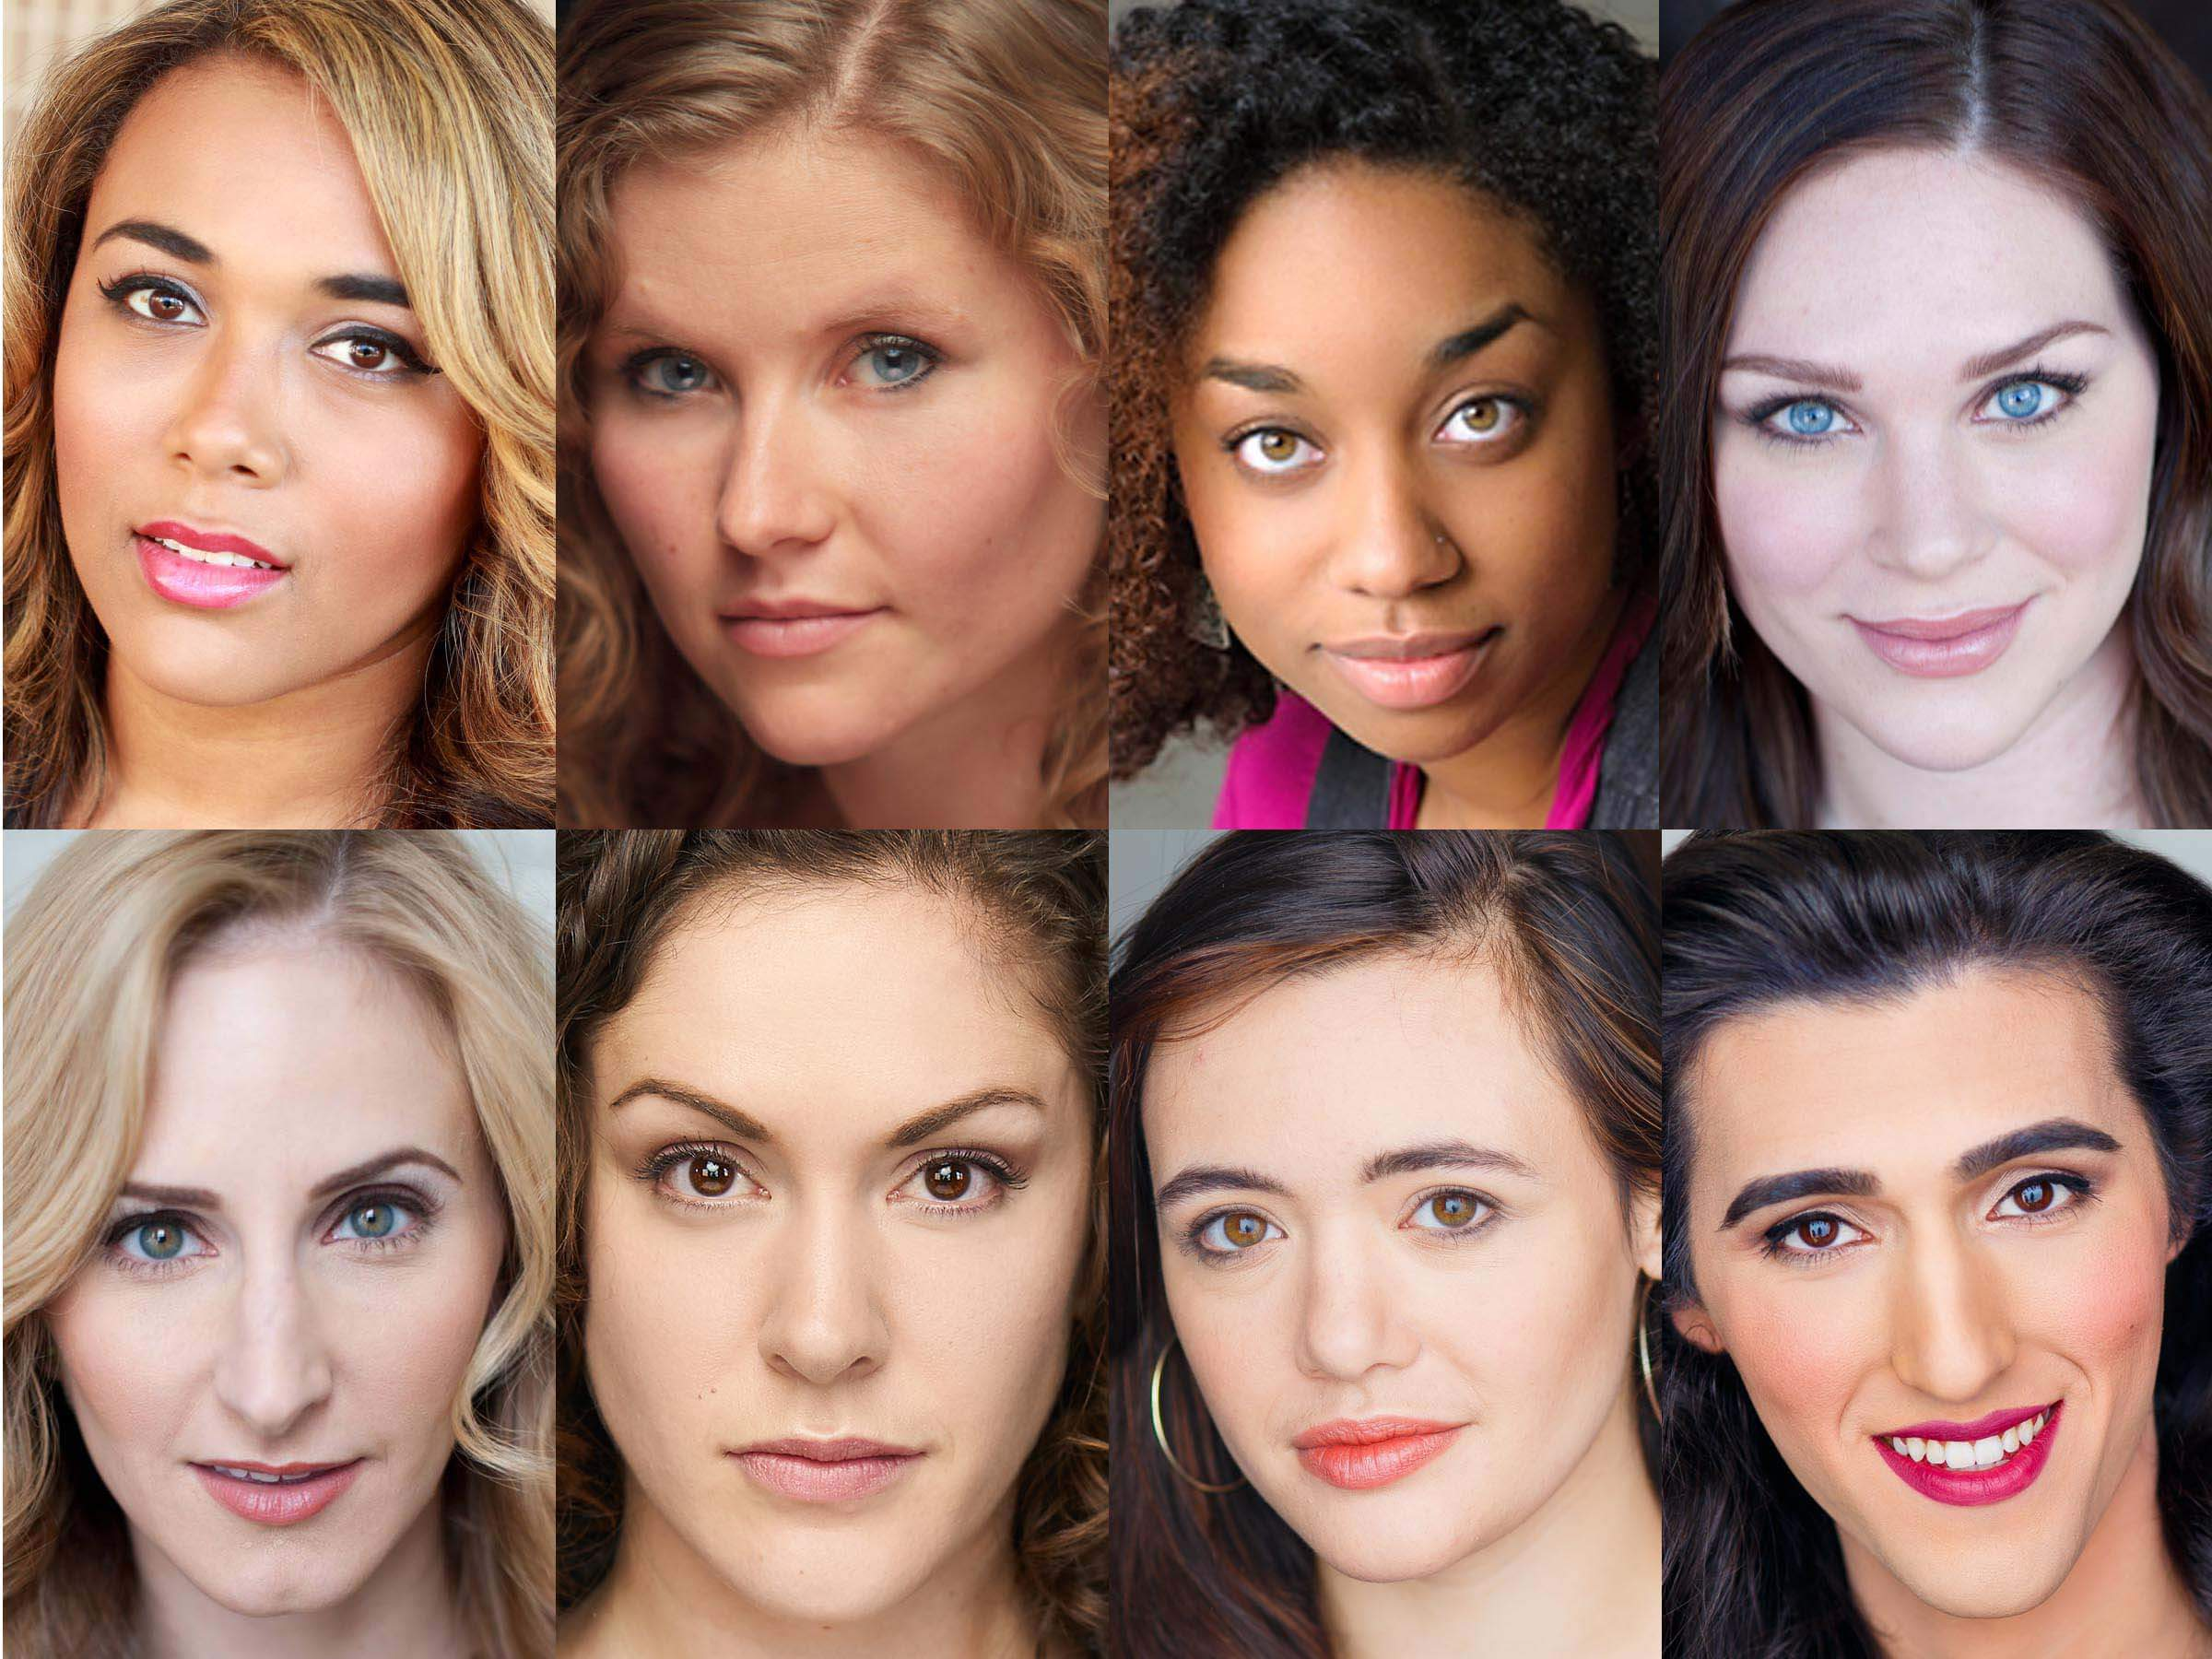 """The cast of Firebrand Theatre's Chicago premiere of LIZZIE (top, l to r) Leah Davis as Bridget, Liz Chidester as Lizzie, Camille Robinson as Emma and Jacquelyne Jones as Alice with the """"late night"""" cast (bottom, l to r) Amanda Horvath as Bridget, Kyrie Anderson as Lizzie, Becca Brown as Emma and Elle Walker as Alice."""